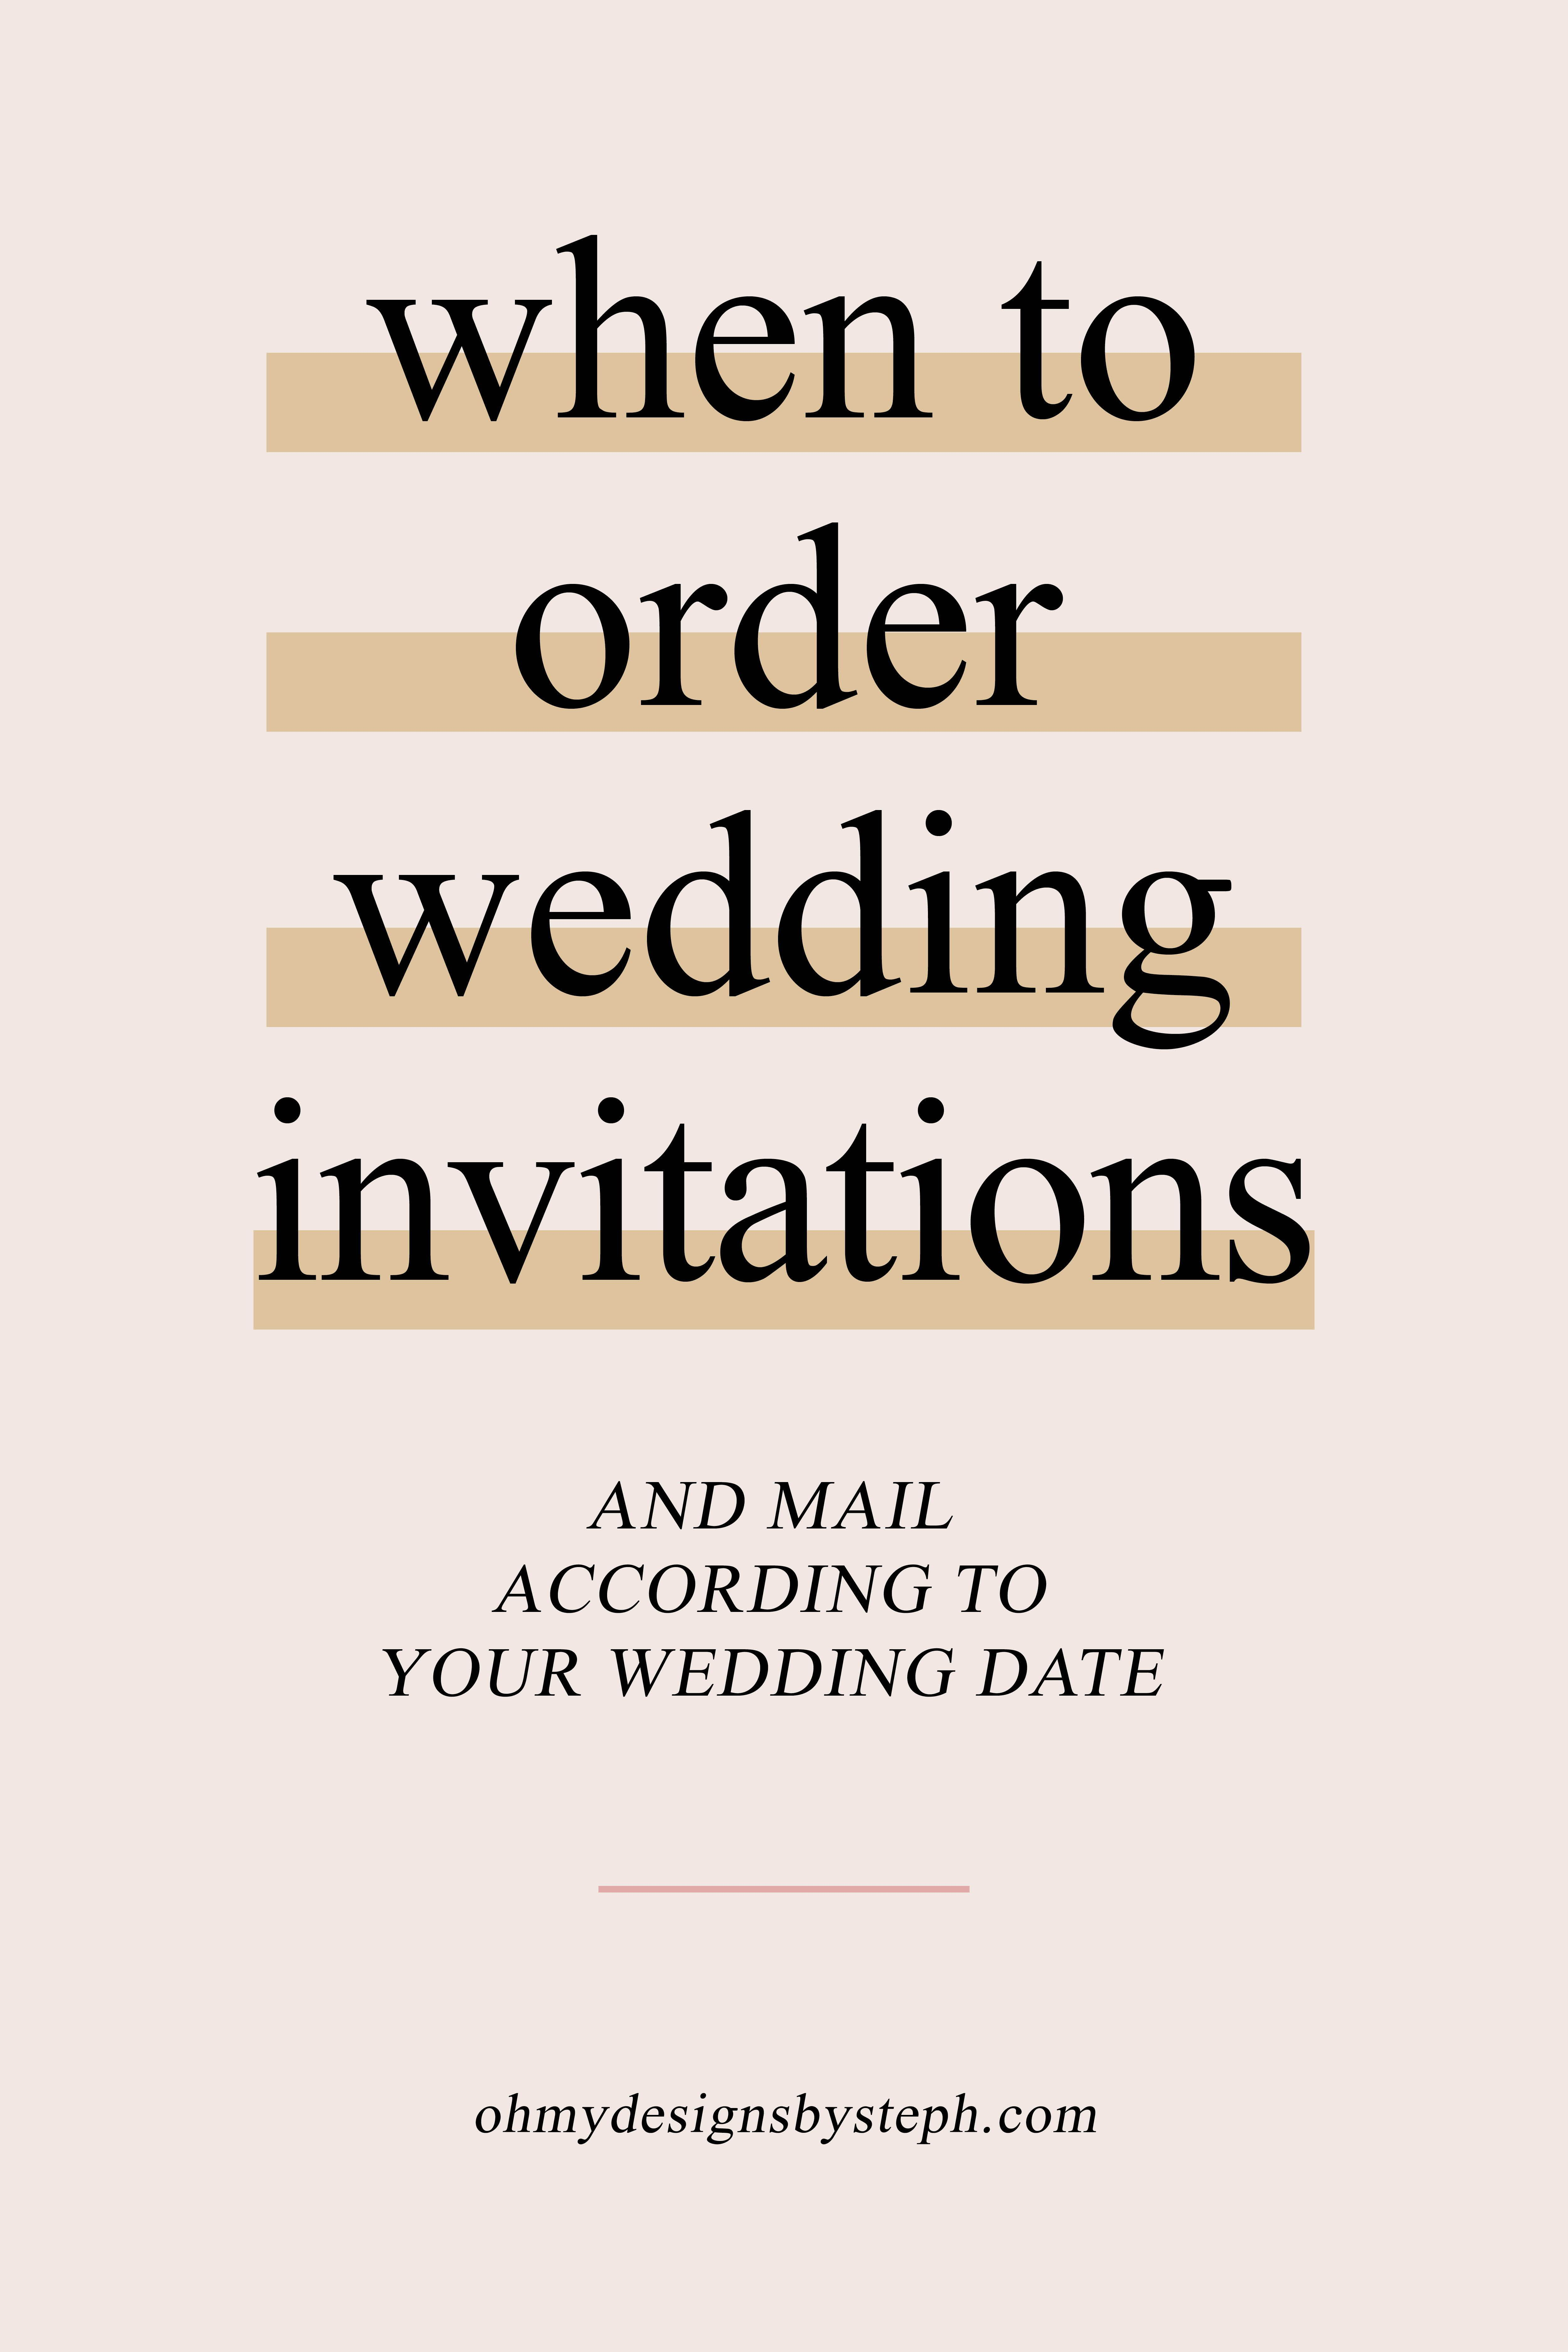 When To Order Wedding Invitations Oh My Designs By Steph Mail Wedding Invitations Order Wedding Invitations Wedding Invitation Stationary